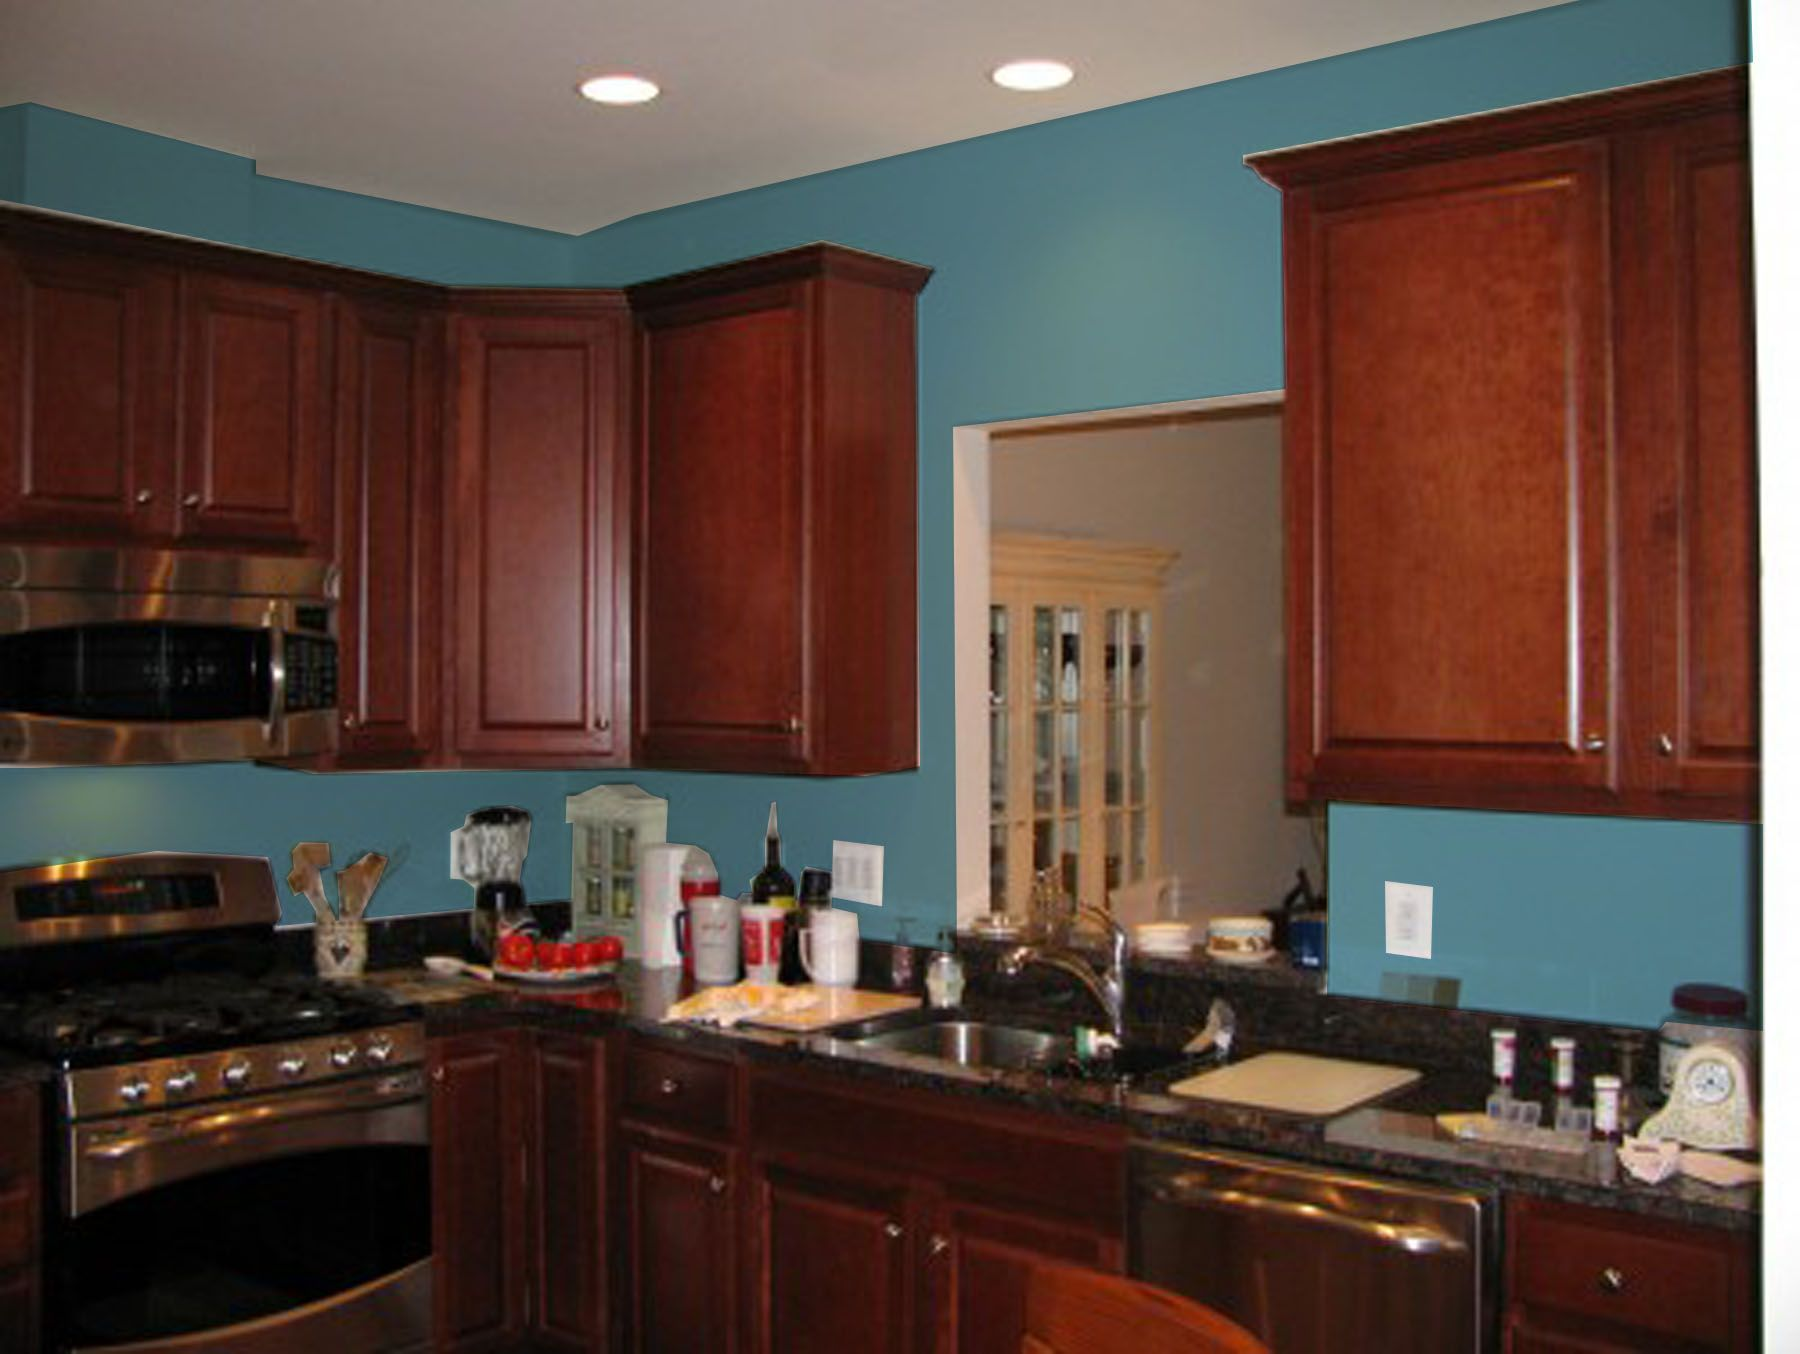 Superior Consider Benjamin Mooreu0027s Blue Toile 748 Which Works Really Well ...  Kitchens With Dark CabinetsCherry Wood CabinetsMaple CabinetsPaint Colors  ... Part 23